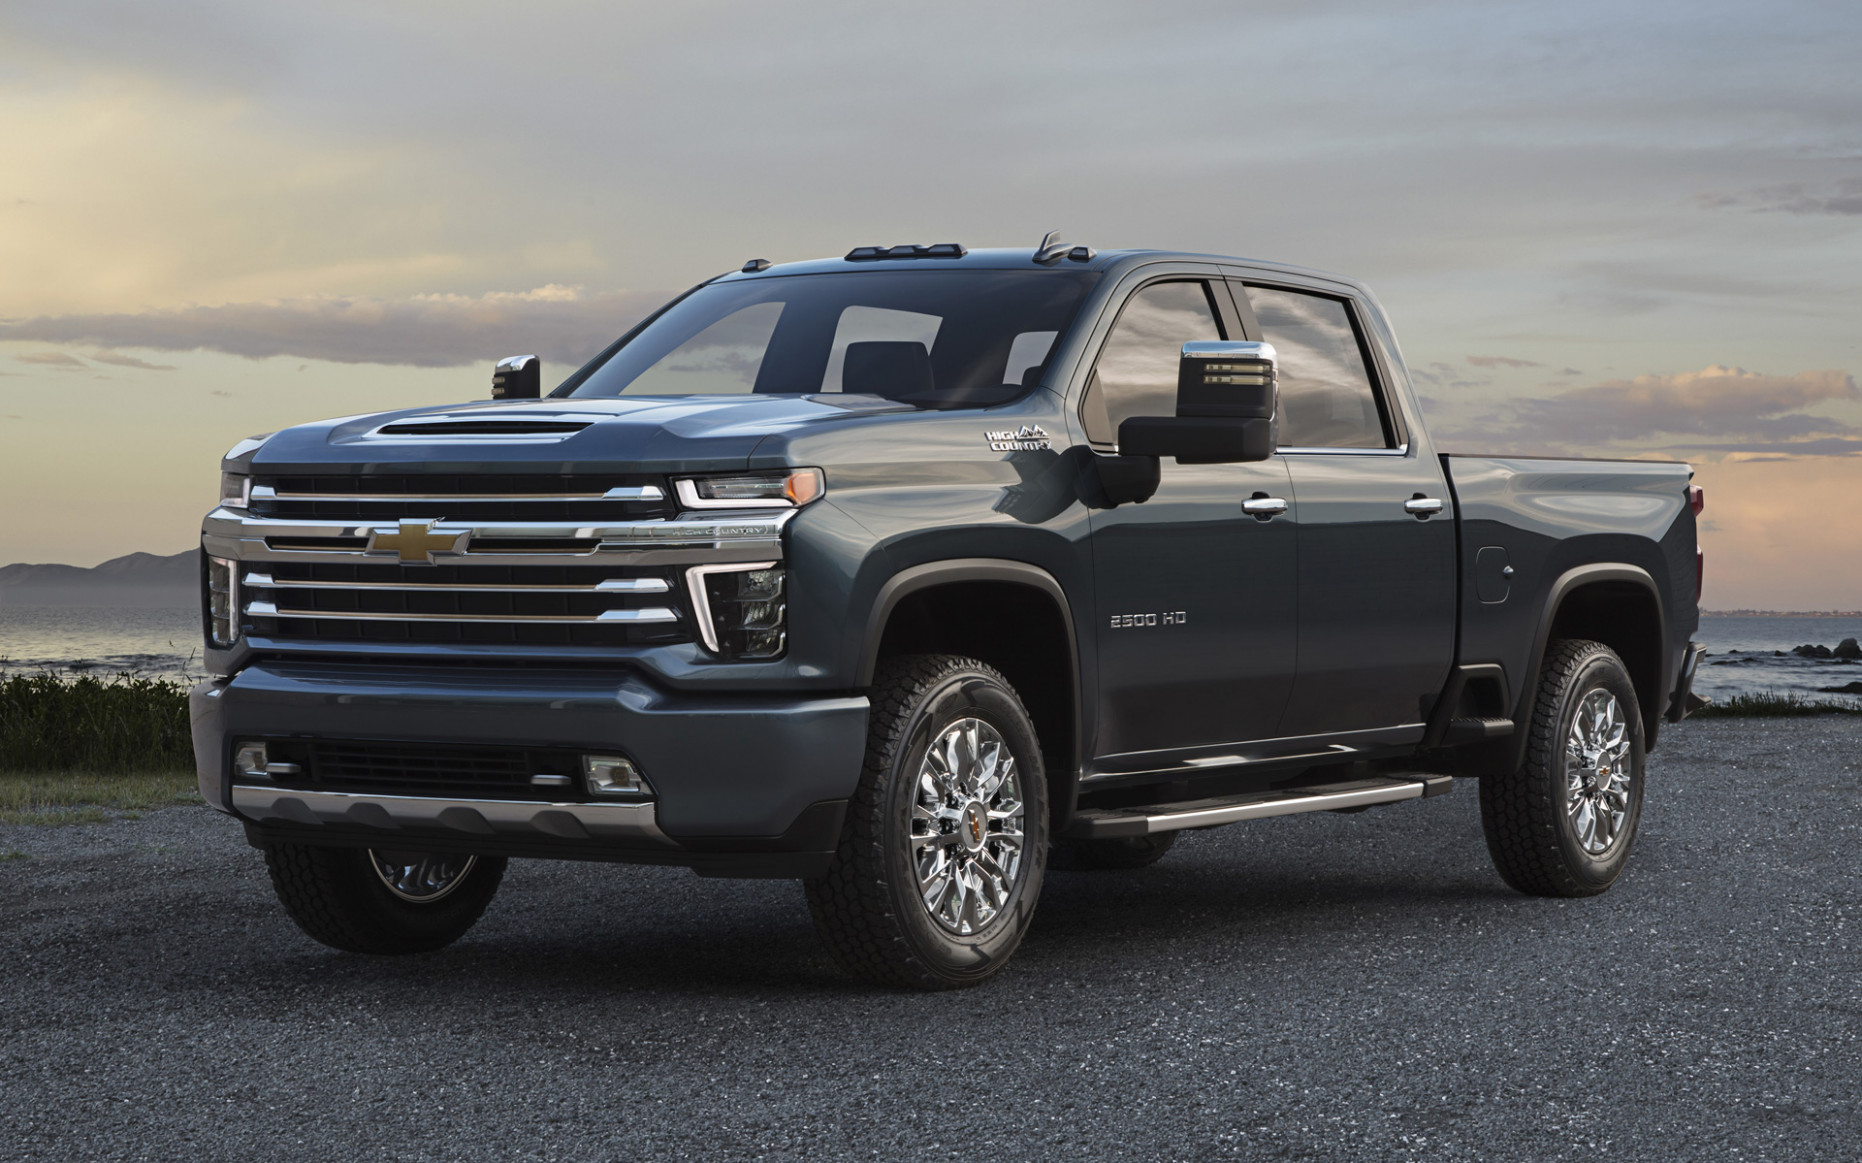 12 Chevy Silverado 12HD High Country: More bling, less butch - 2020 gmc high country 2500